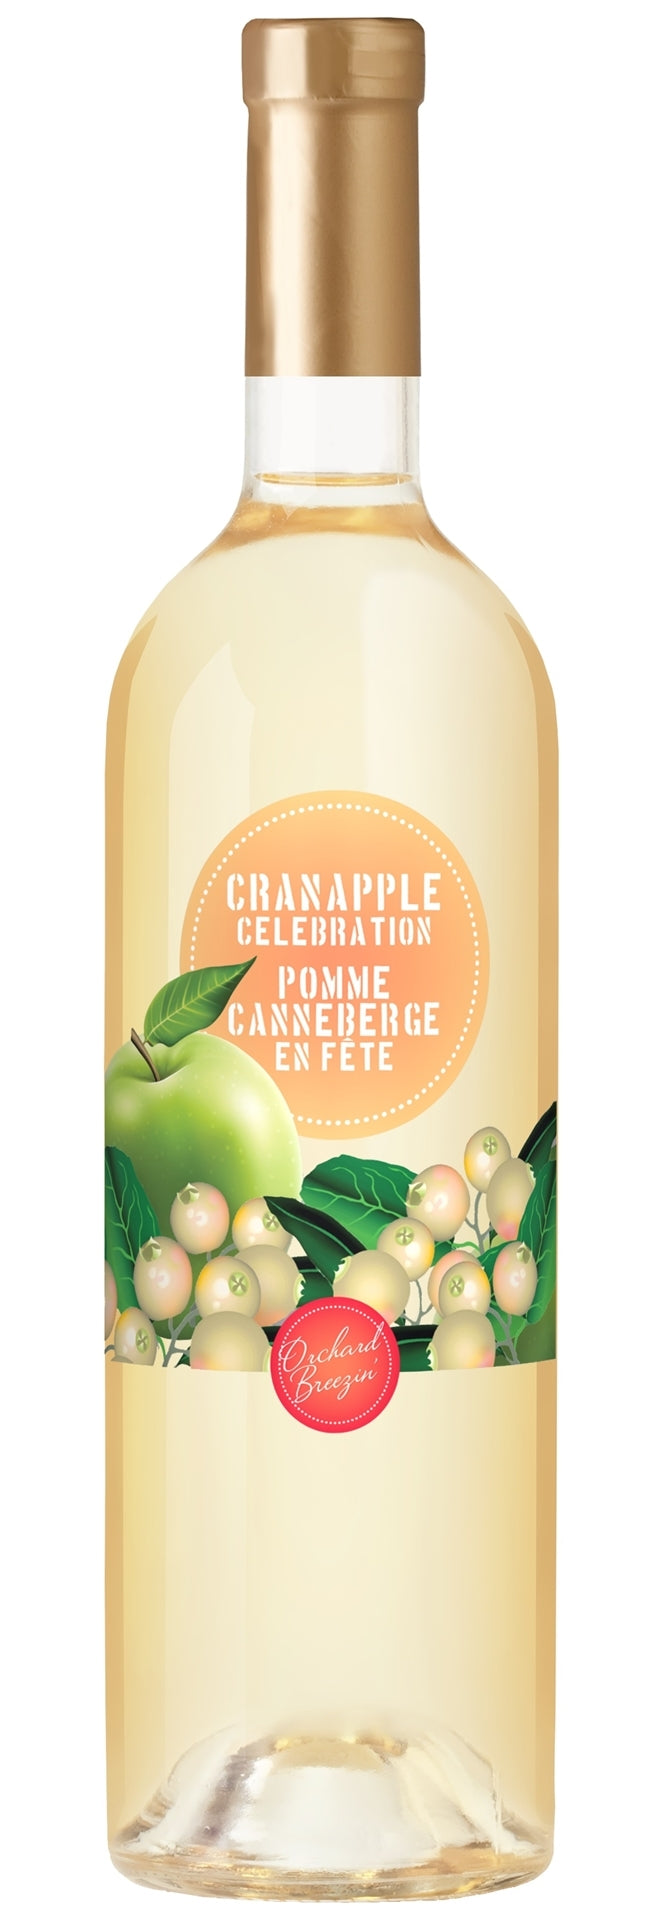 Orchard Breezin' Cranapple Celebration